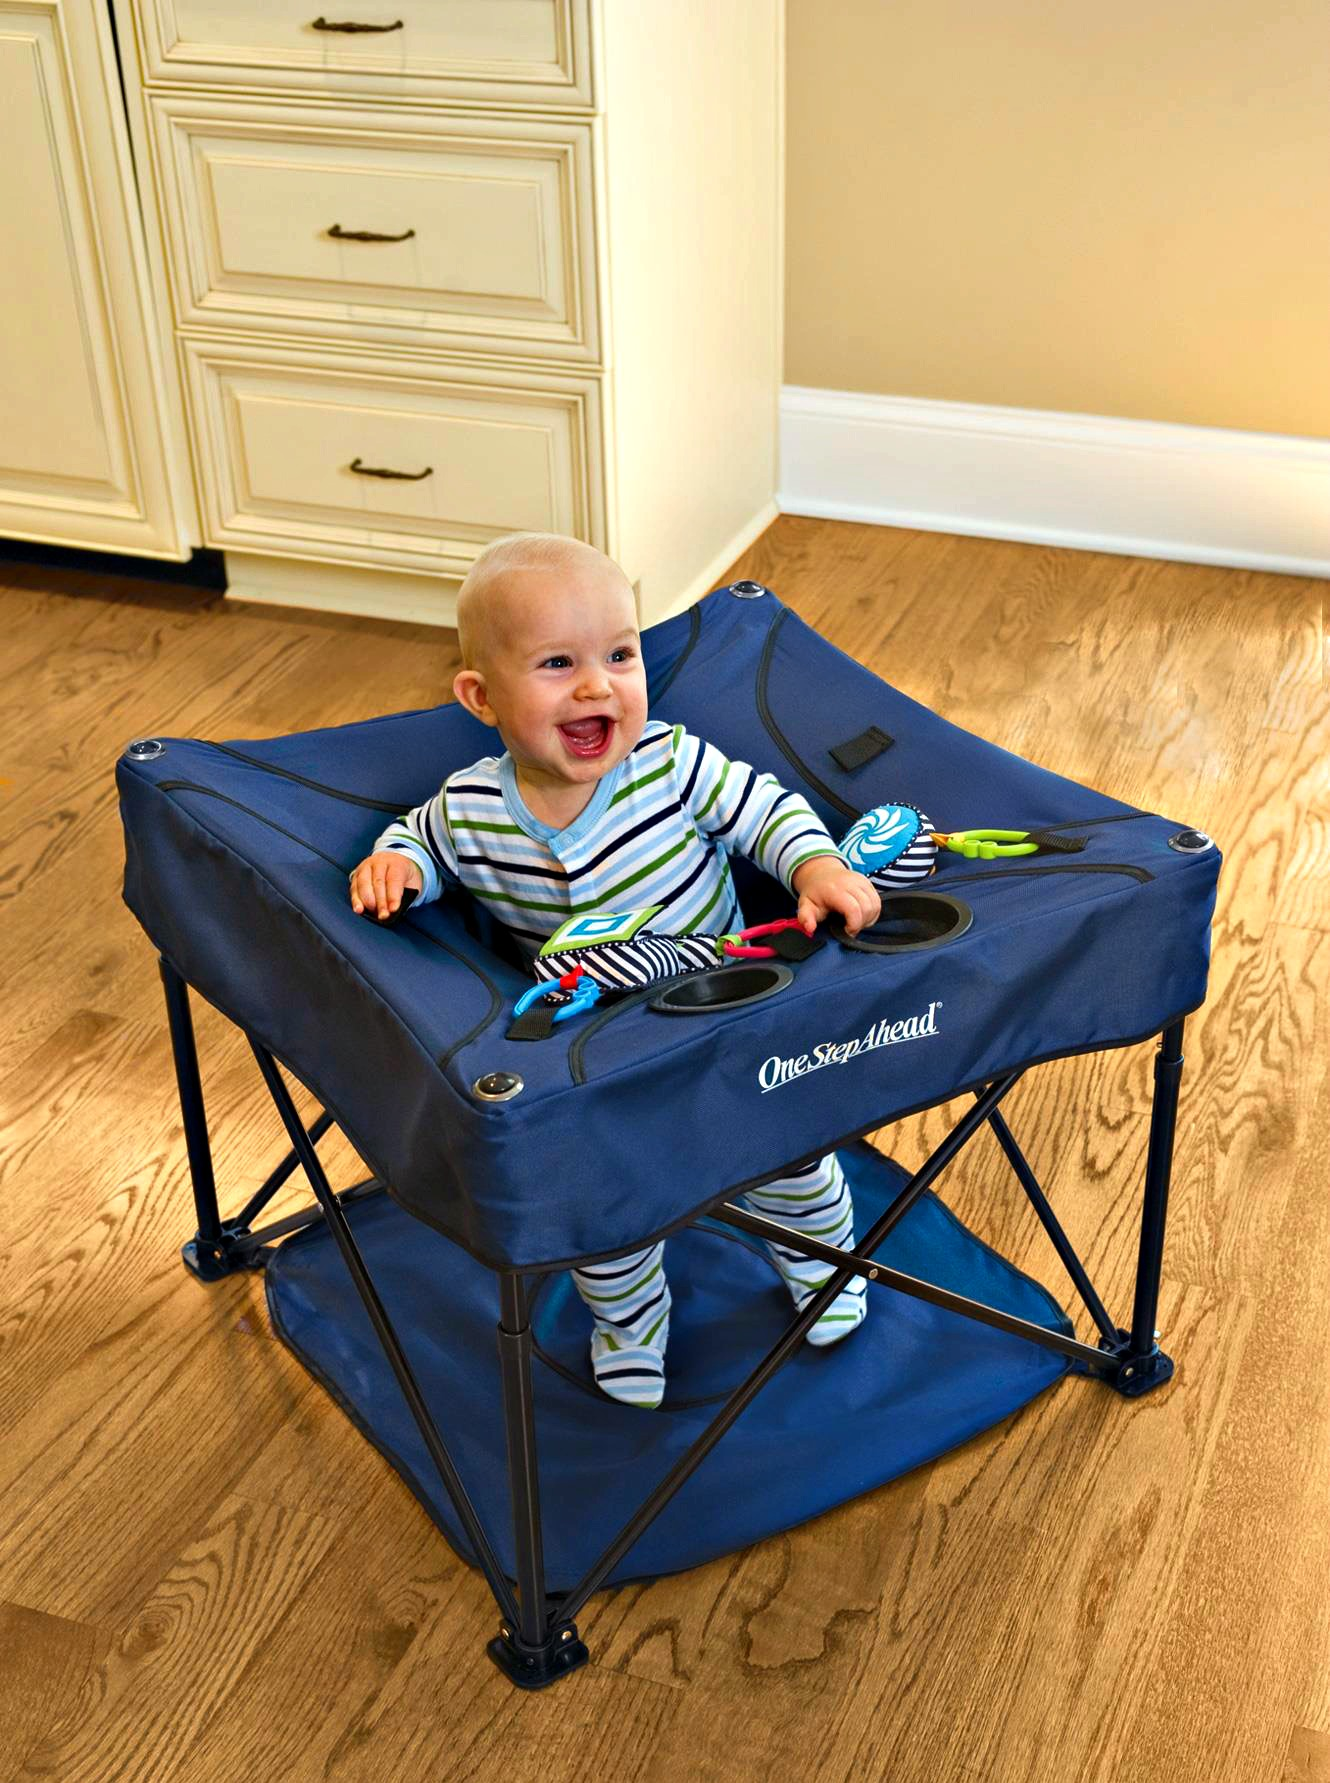 Baby Gift Guide Event: One Step Ahead, KidCo Go-Pod Portable Activity Center! #babygifts